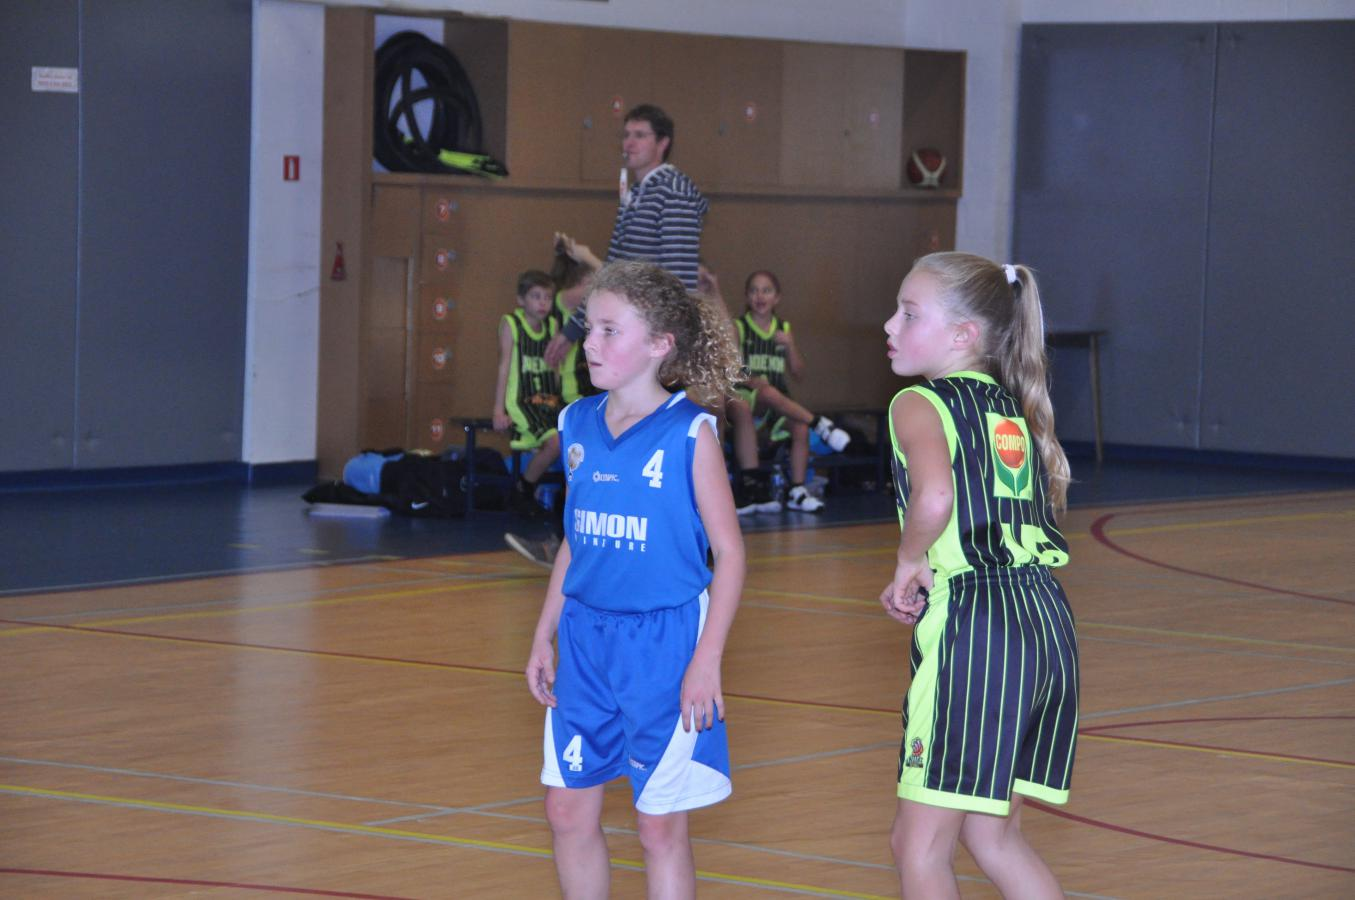 07/10/17 : U12 CINEY C / ANDENNE